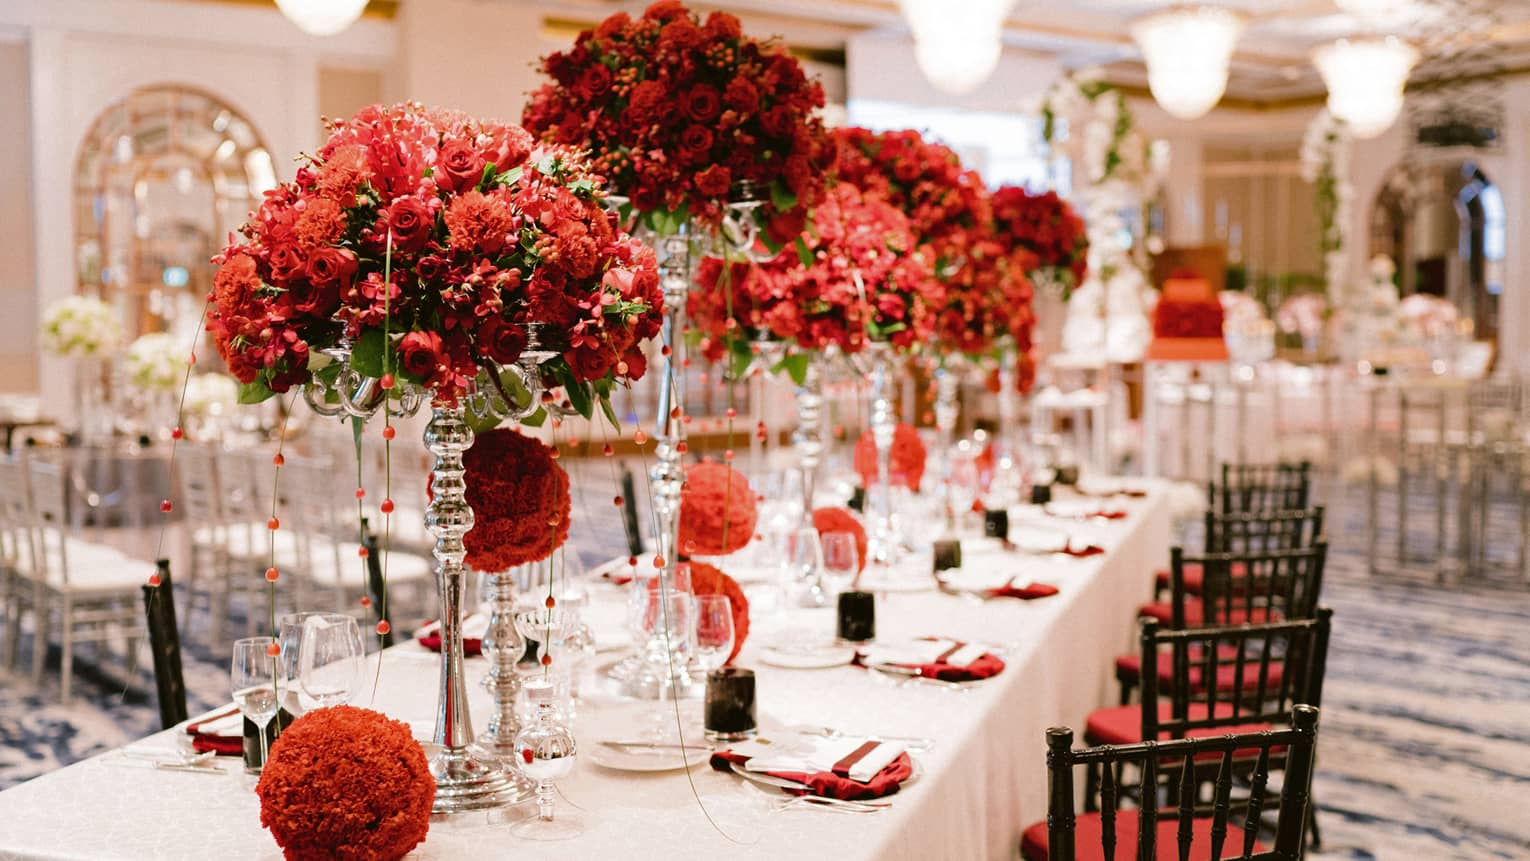 Red flower arrangements on dining table in wedding reception banquet room